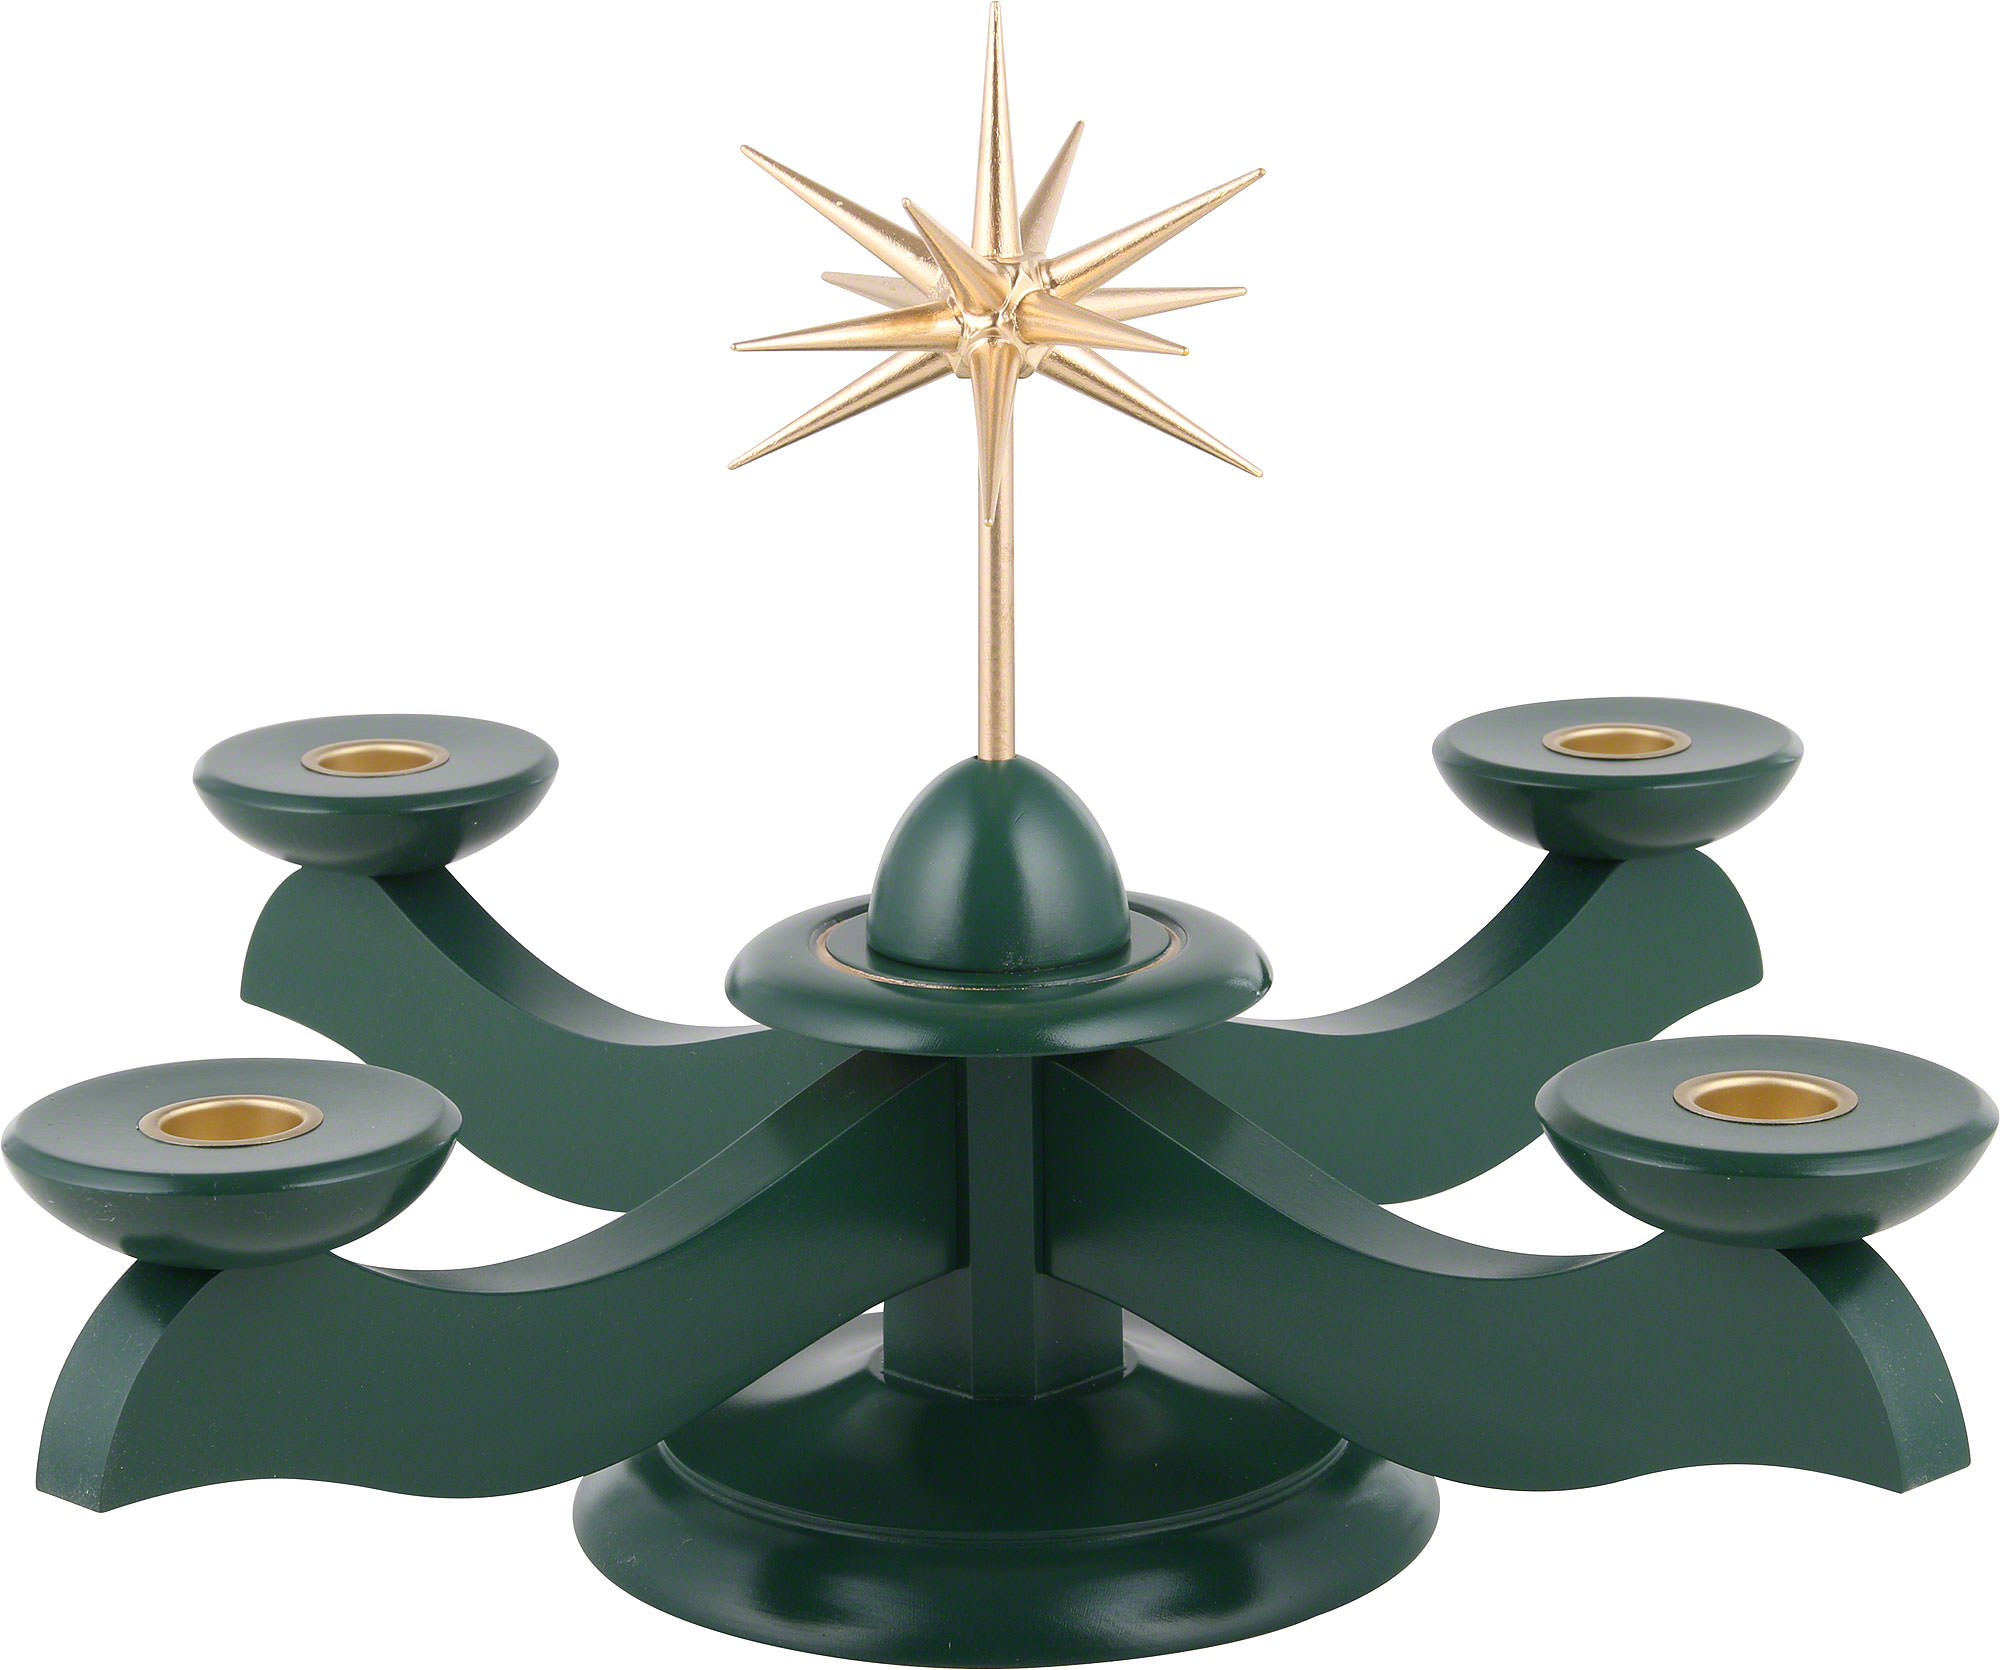 Candle Holder Width Christmas Star And Advent Green 29 29 26 Cm 11 4 11 4 10 2in By Albin Preissler